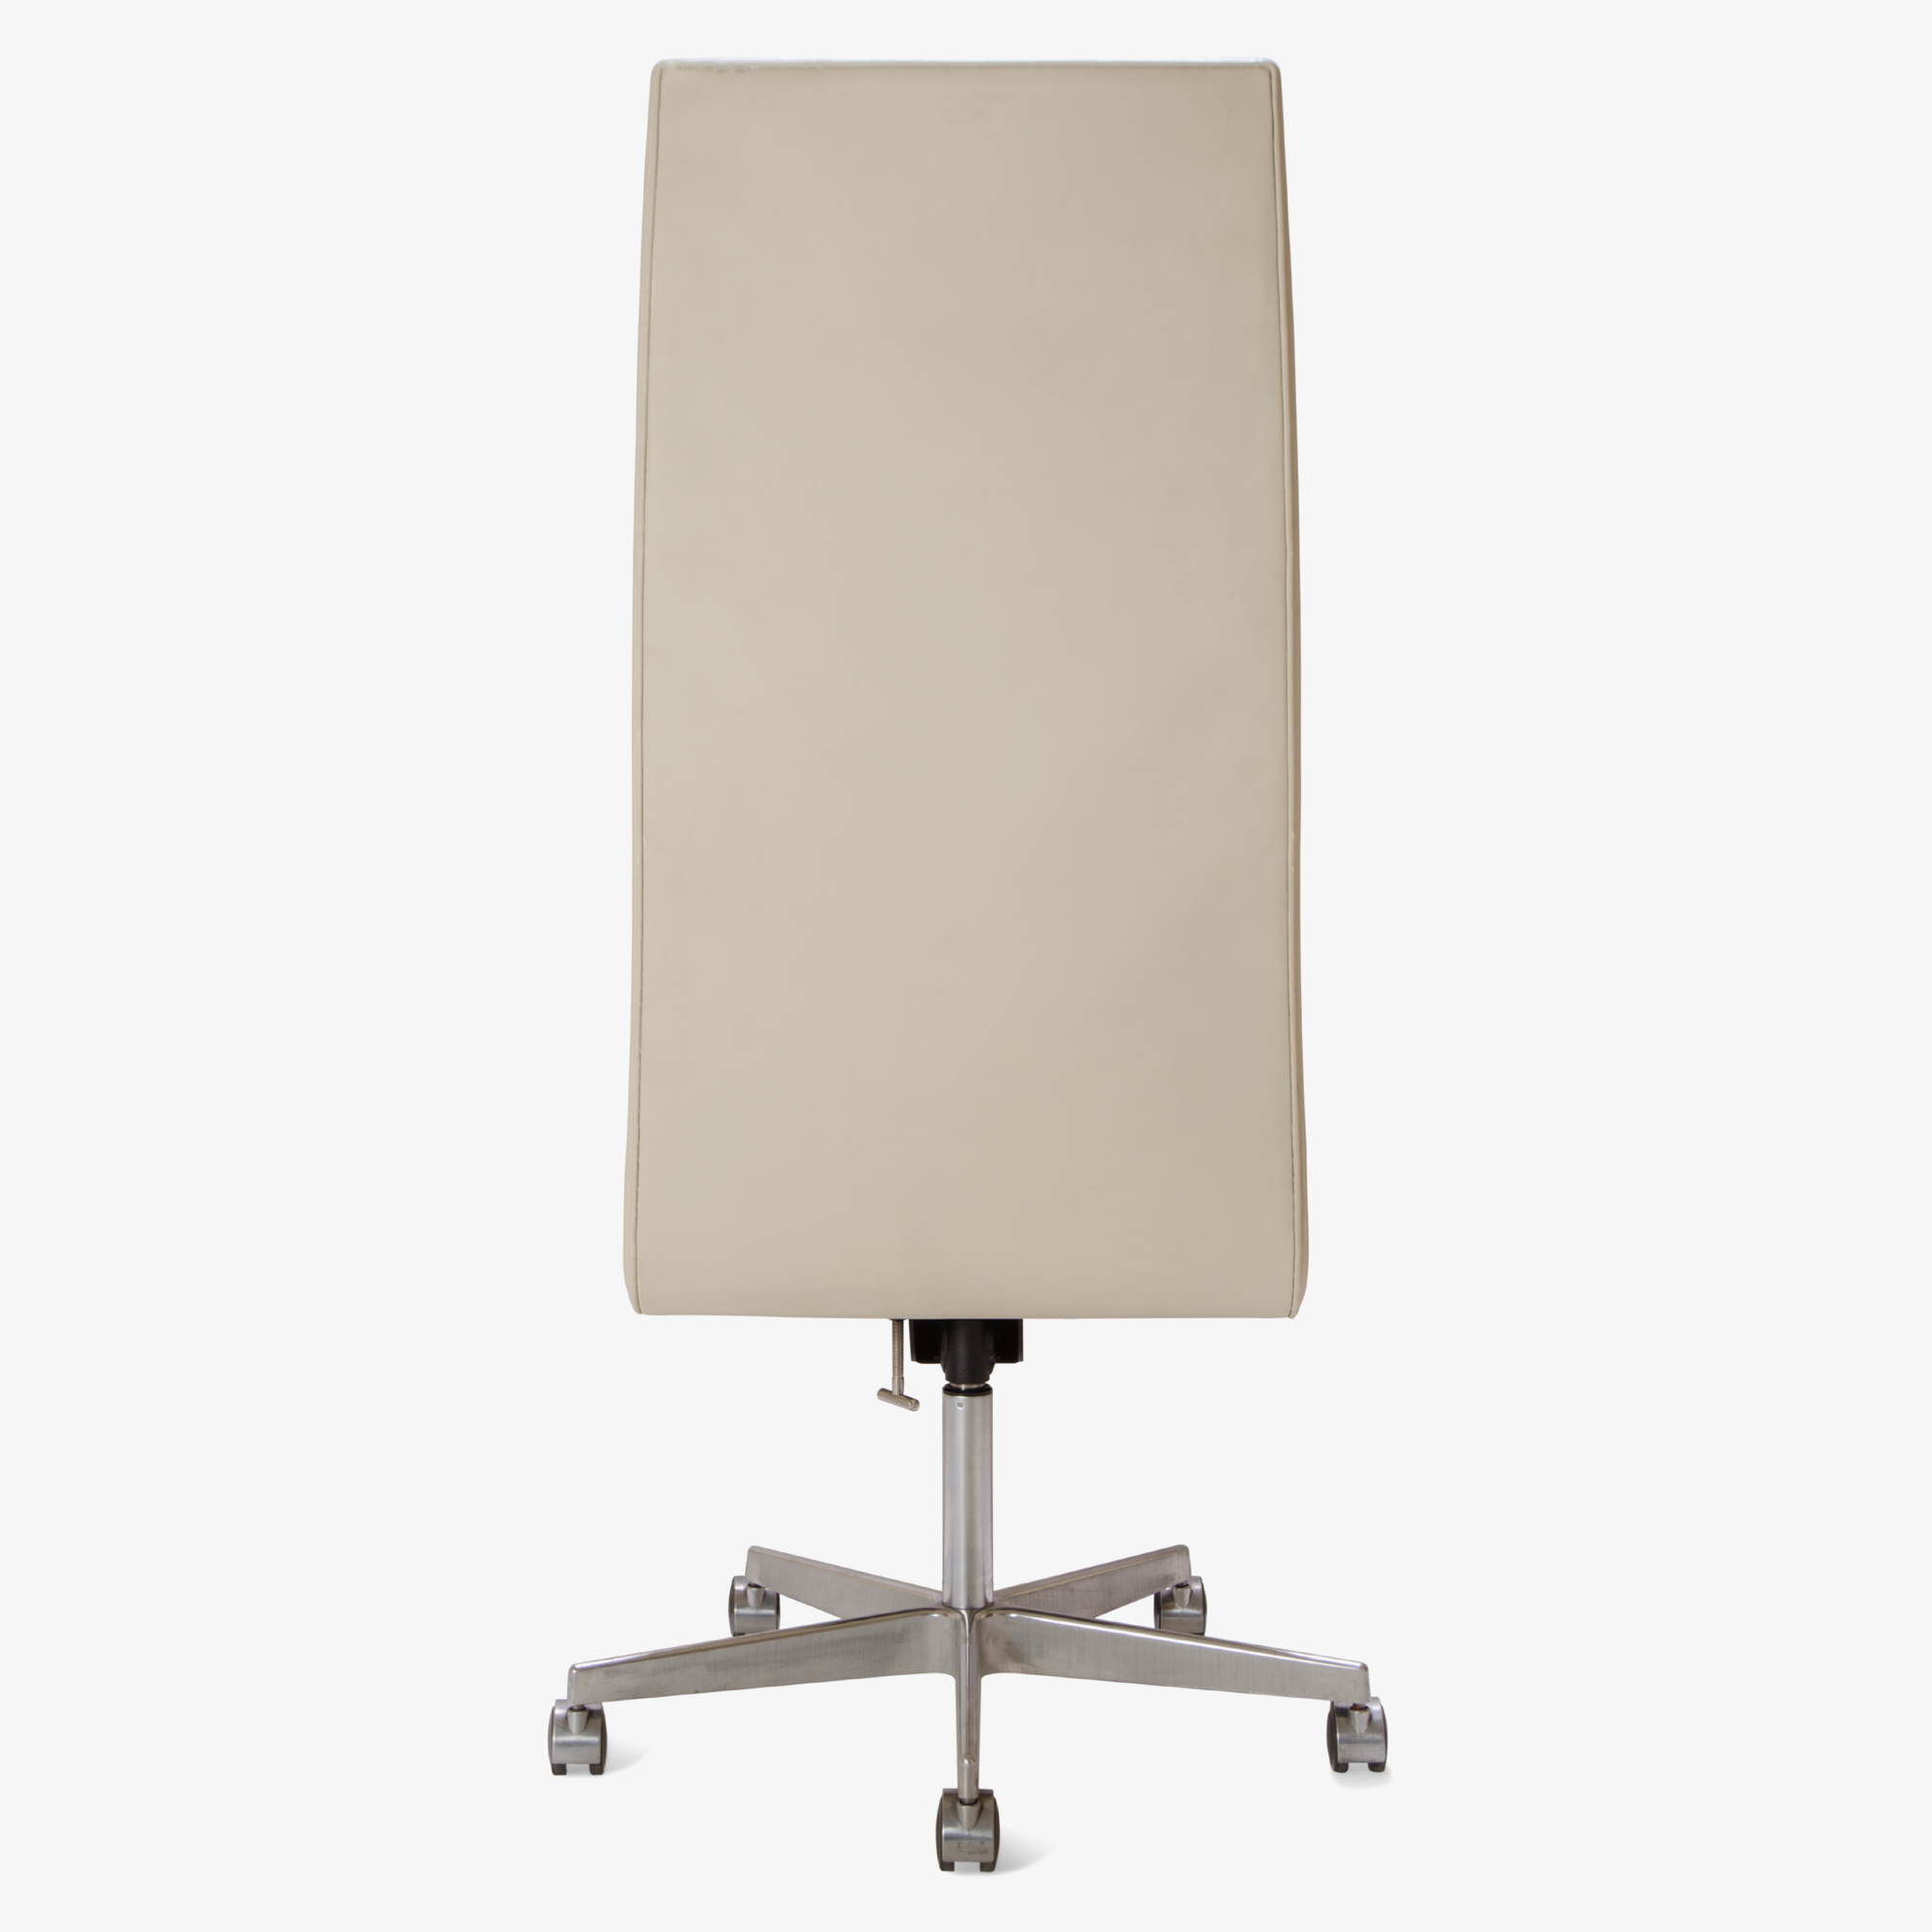 Oxford Chair in Ivory Leather6.png